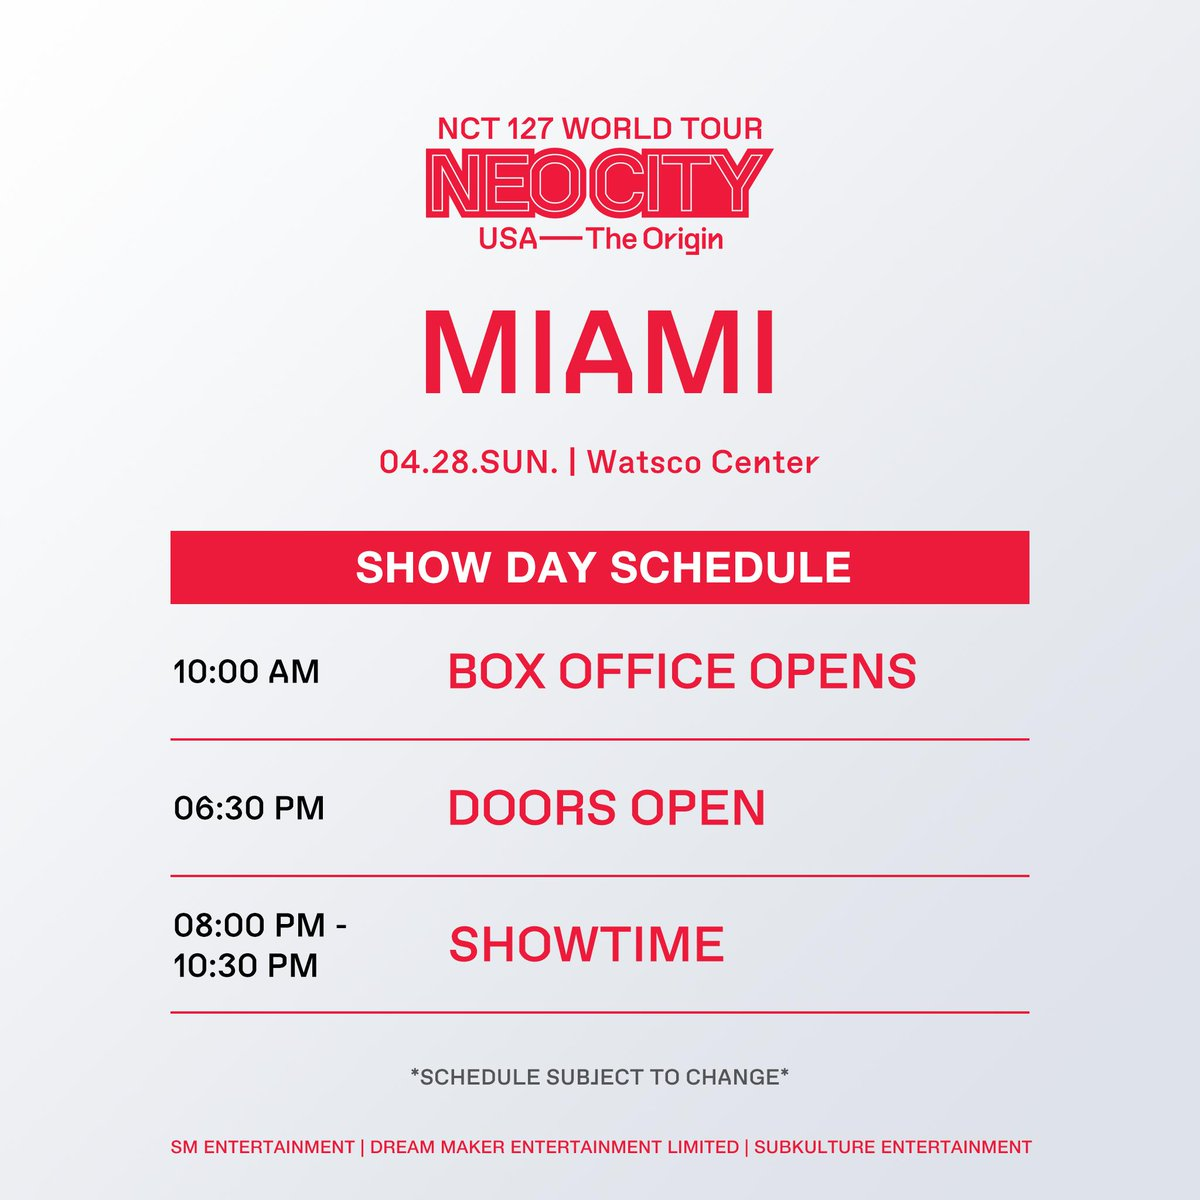 What's up, Miami! Hands up if you're excited to see NCT 127  Peep our #NEOCITYinMIA show day schedule  #NCT127inMIA #NEOCITYinUSA #NCT127inUSA #NCT127  For :  https://www. ticketmaster.com/event/0D005673 8BAF8977 &nbsp; … <br>http://pic.twitter.com/UTo9wBF6YK